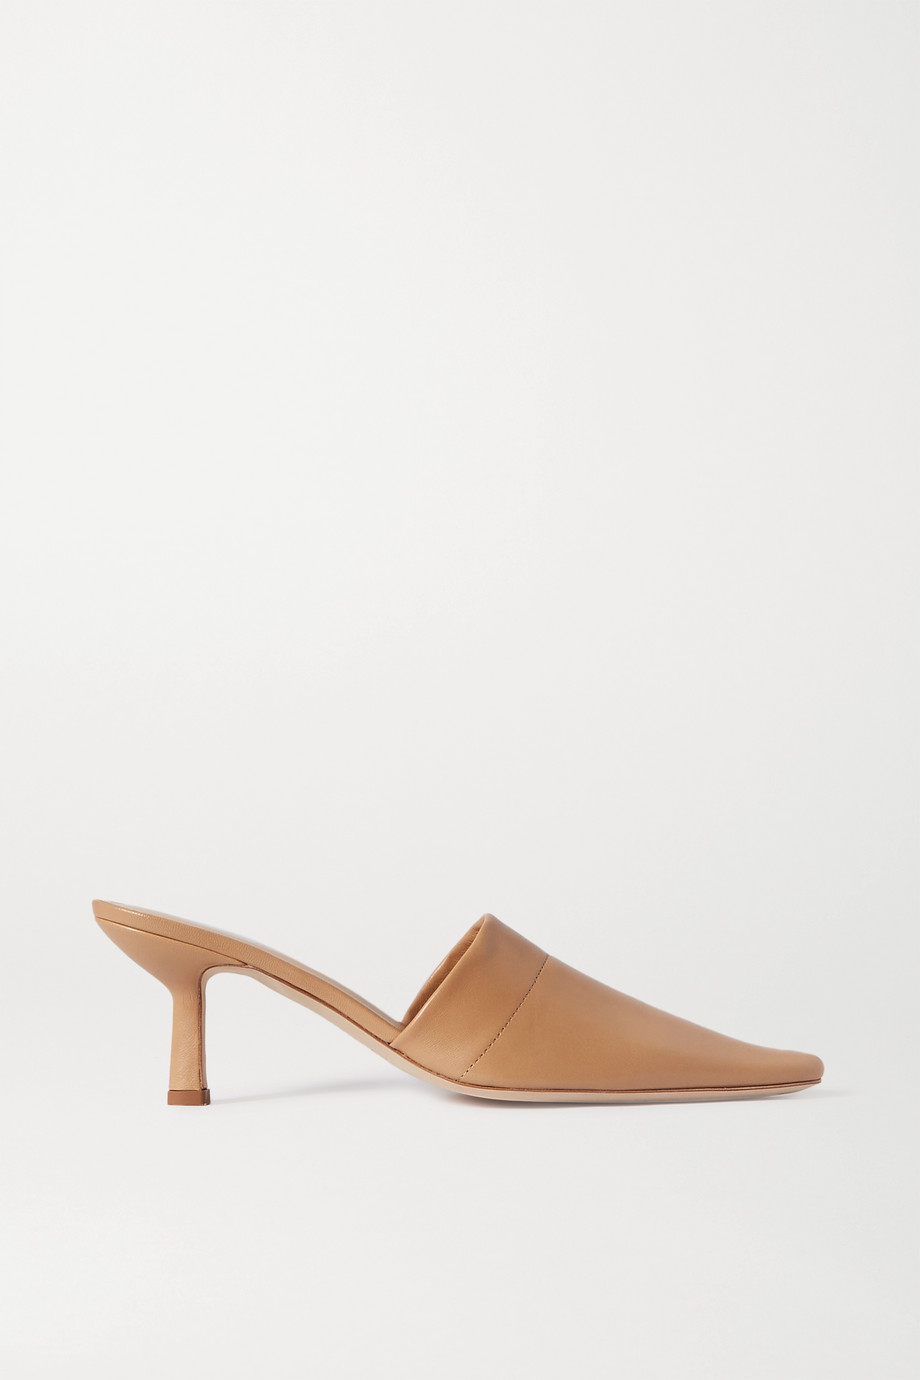 BY FAR Cynthia leather mules